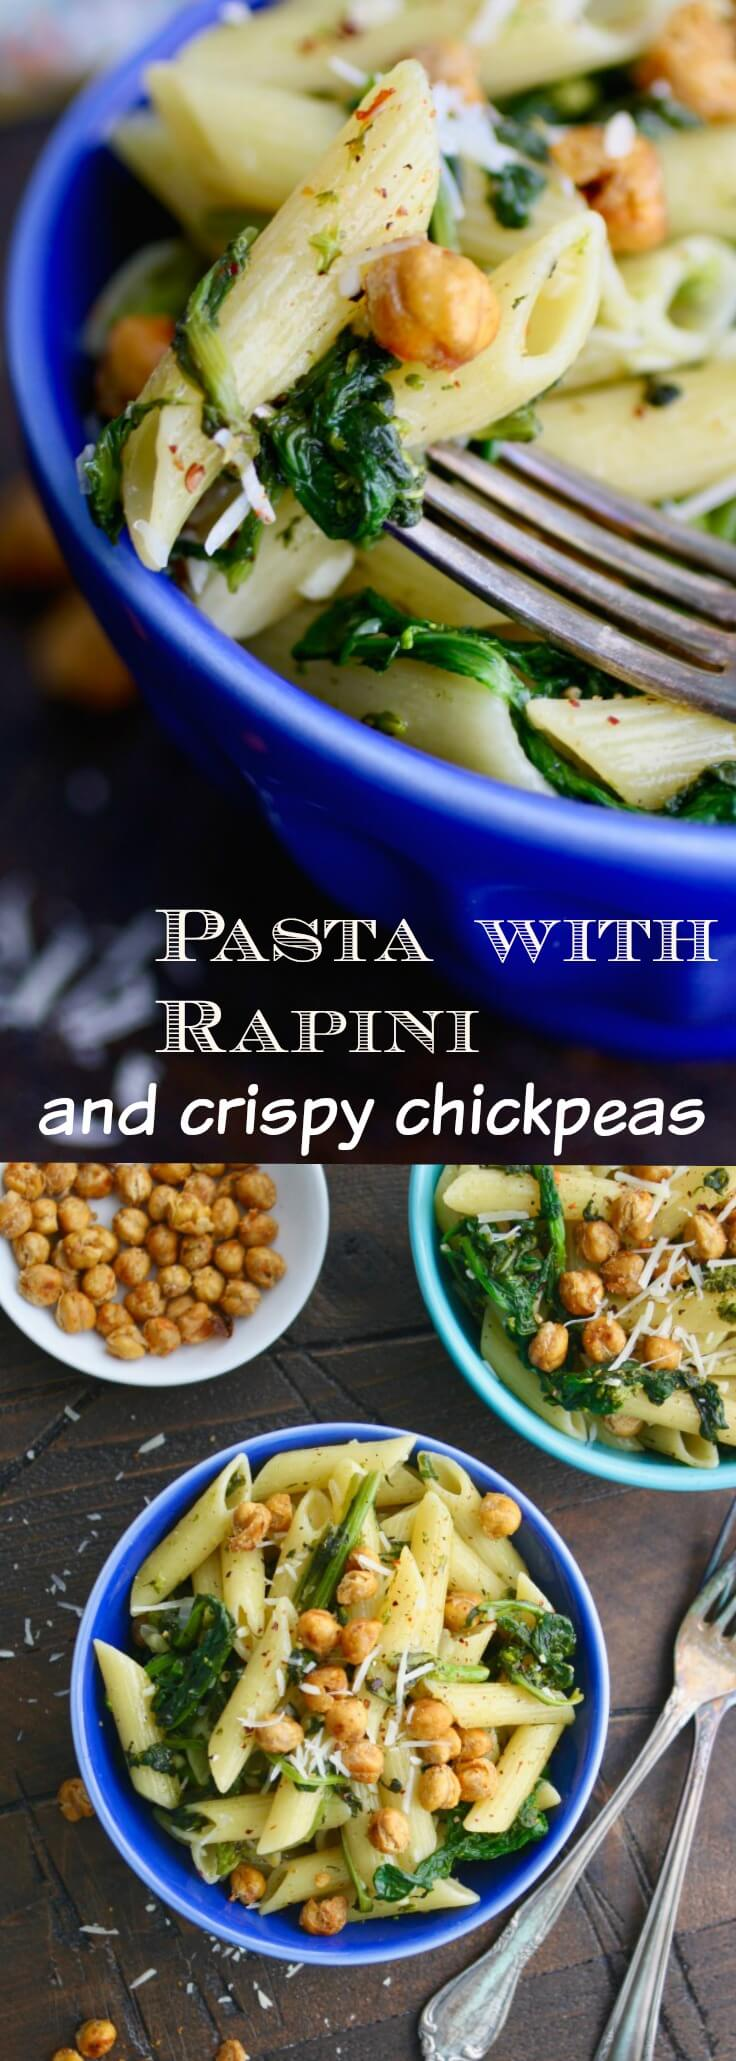 Your next meal could be fabulous! Try this recipe for Pasta with Rapini and Crispy Chickpeas!